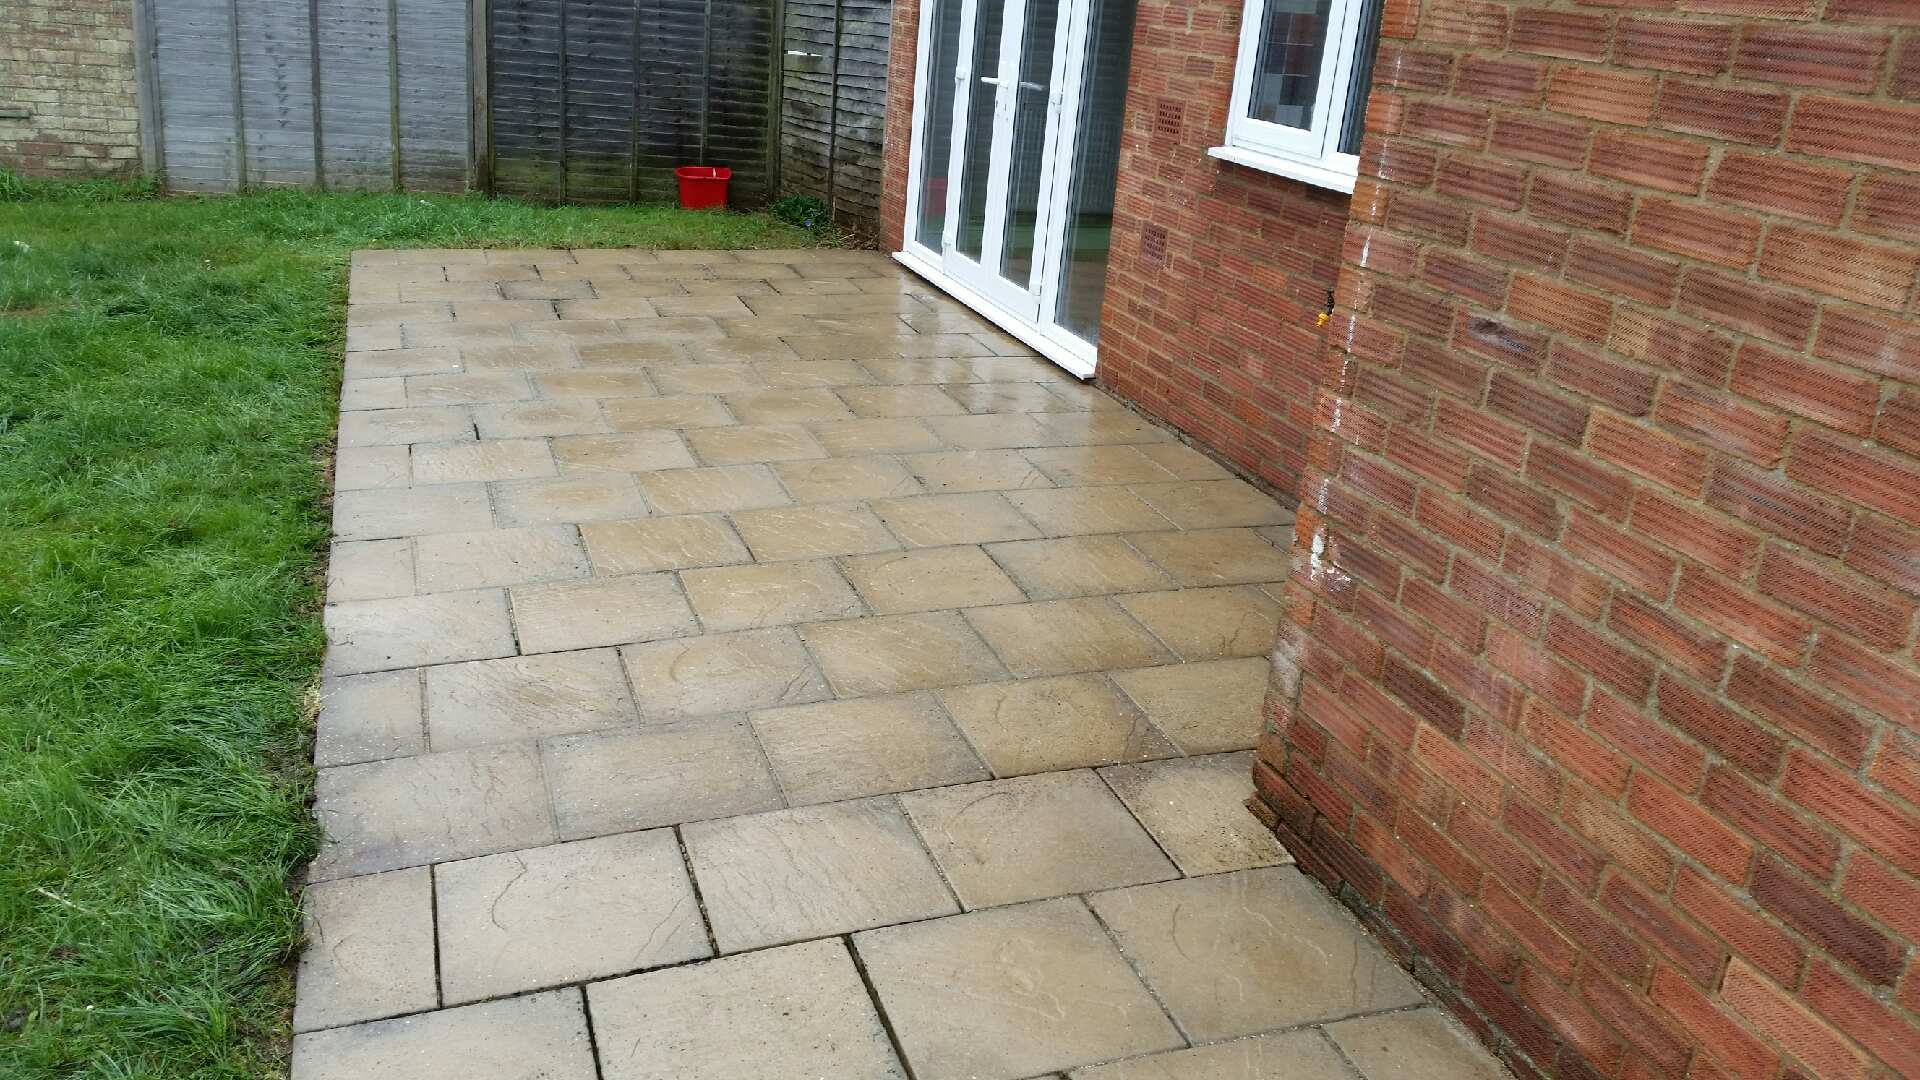 ExteriShine Recent Work - Paving Slabs - After